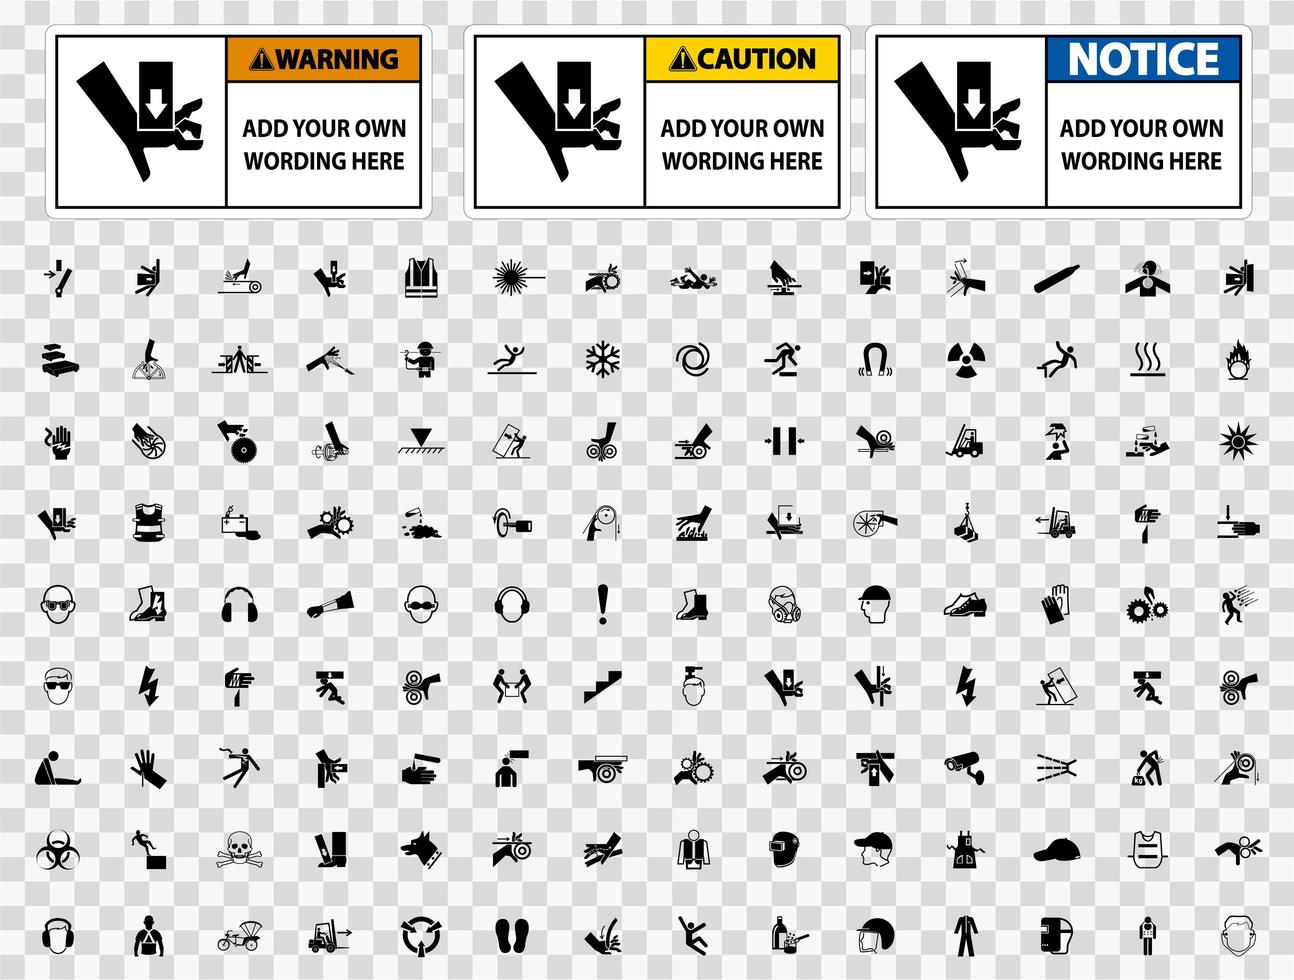 Warning Sign Template Set with Icons vector